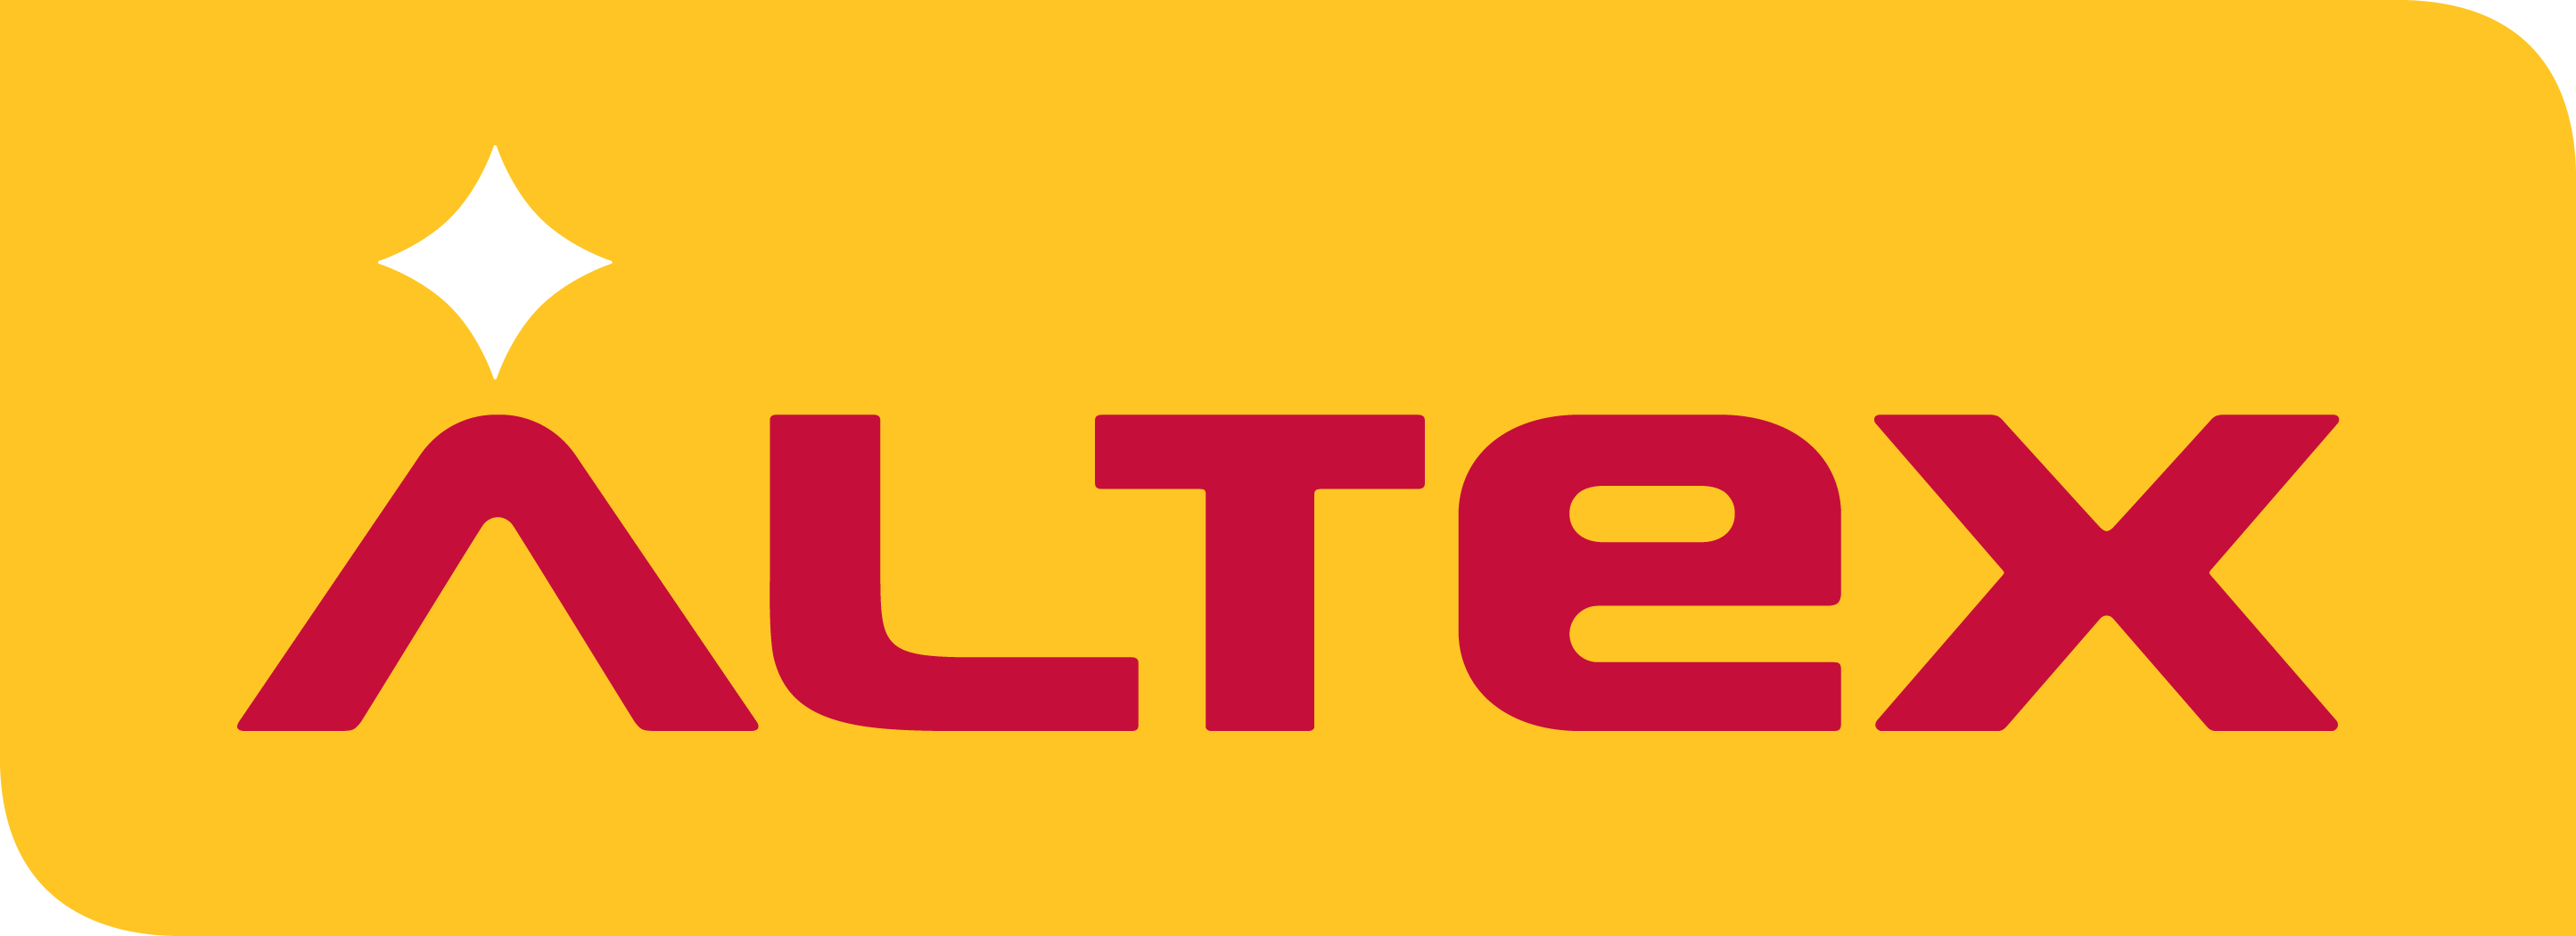 altex logo